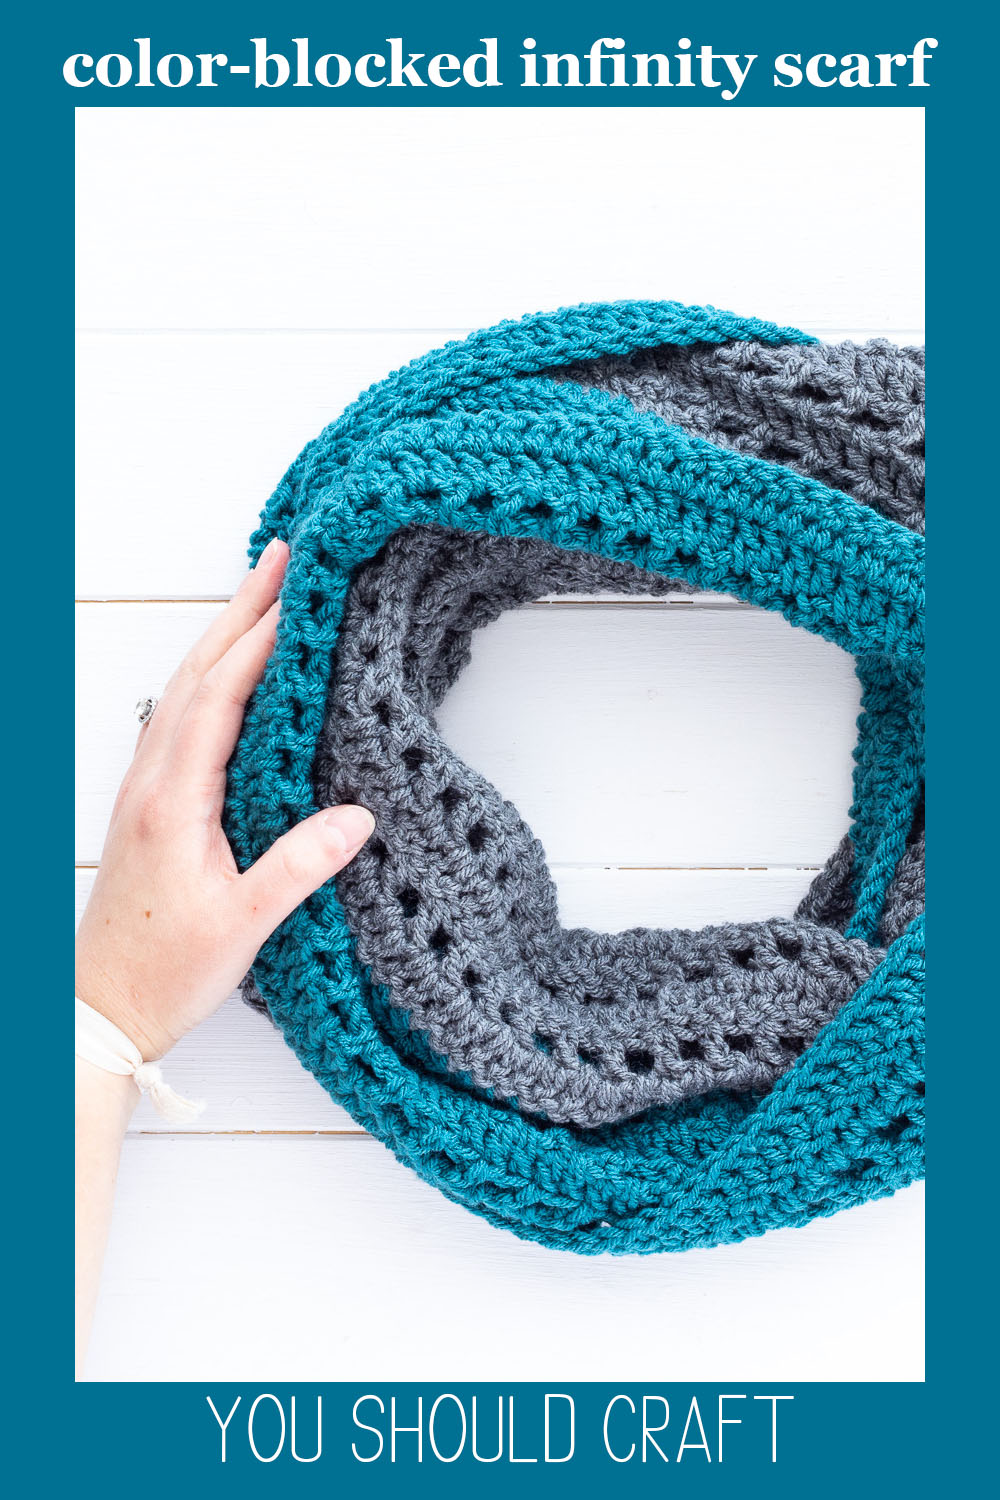 """teal and dark grey crocheted scarf with the text """"color-blocked infinity scarf - you should craft"""""""